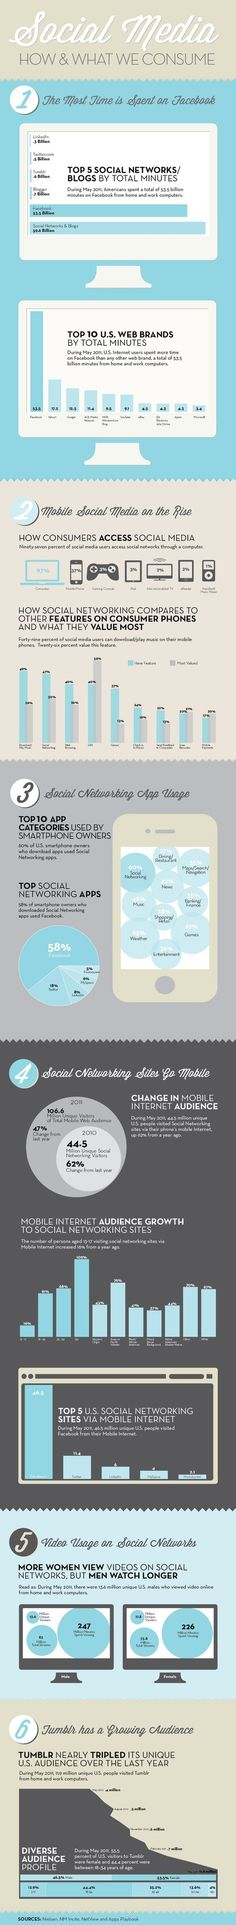 #Social #Media: How and What we #Consume. #Infographic #SocialMedia